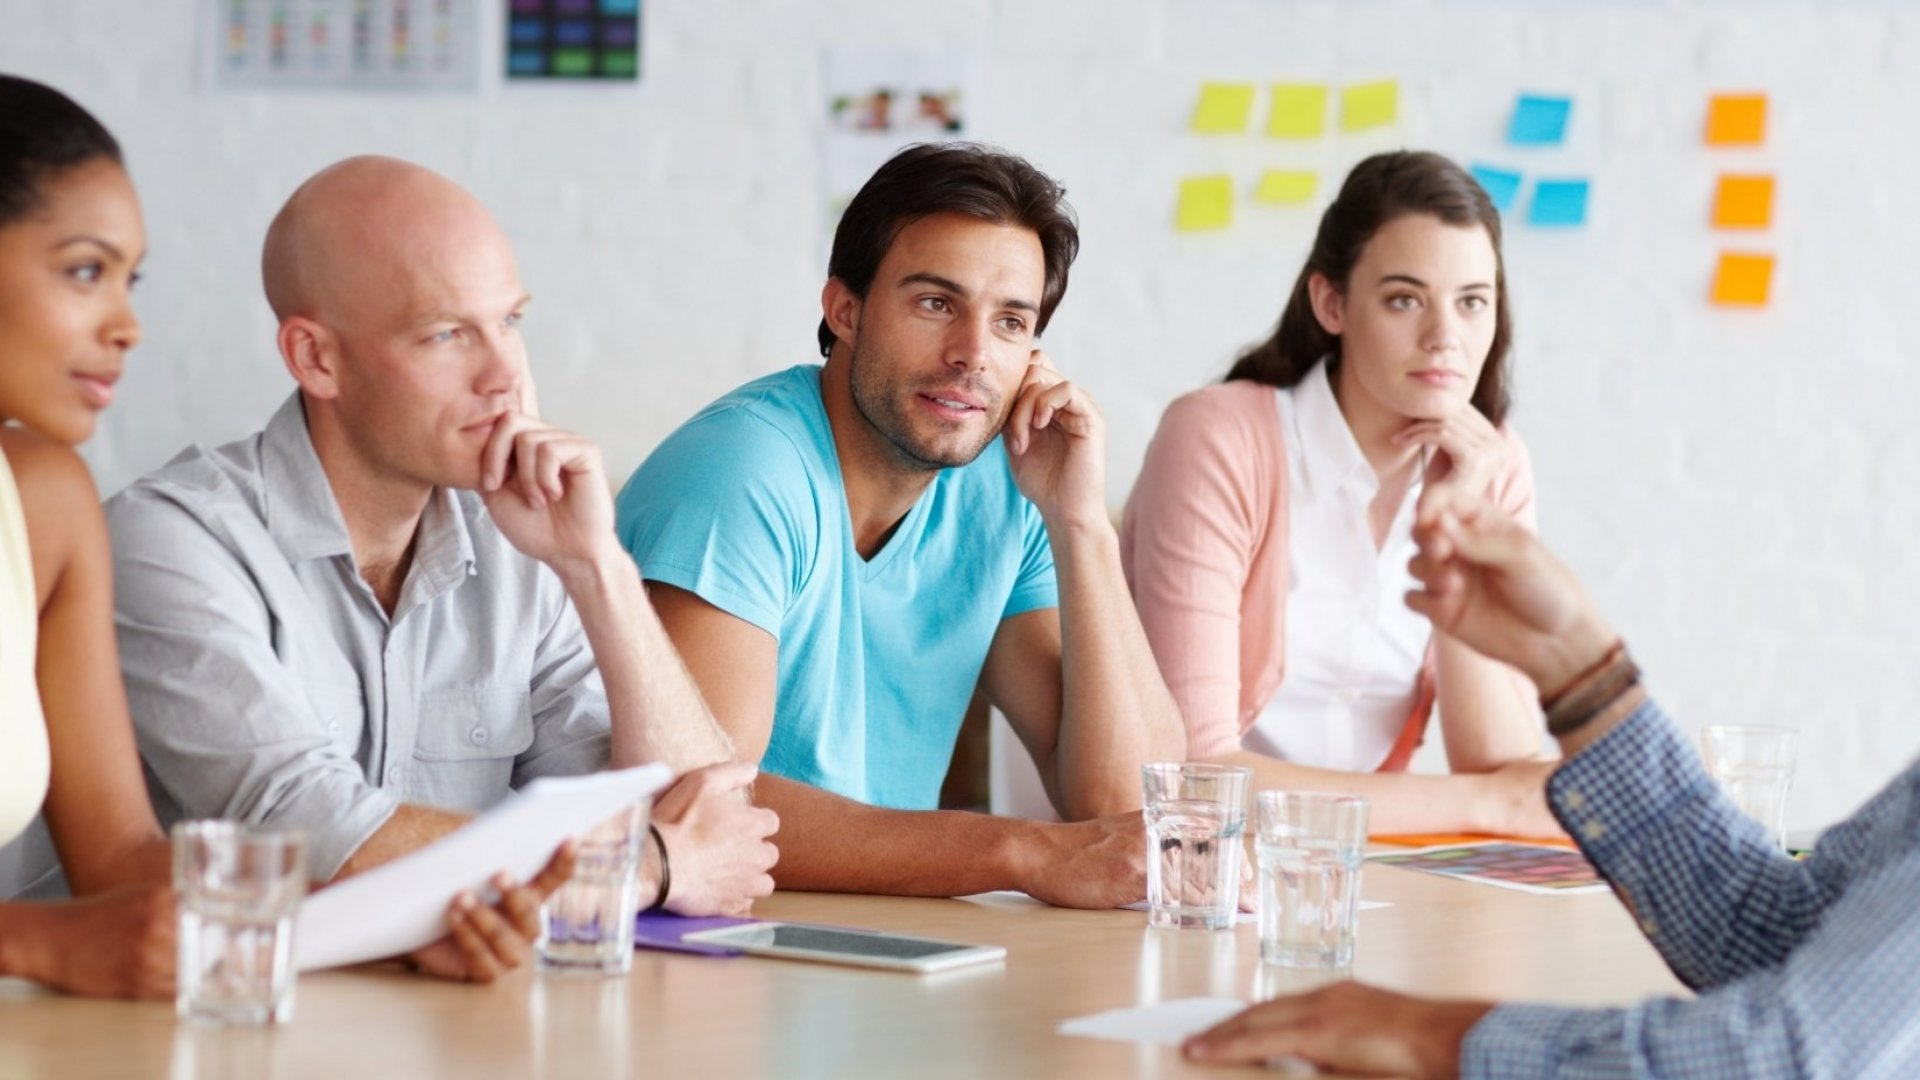 A Simple Plan for Hiring the Best Candidate